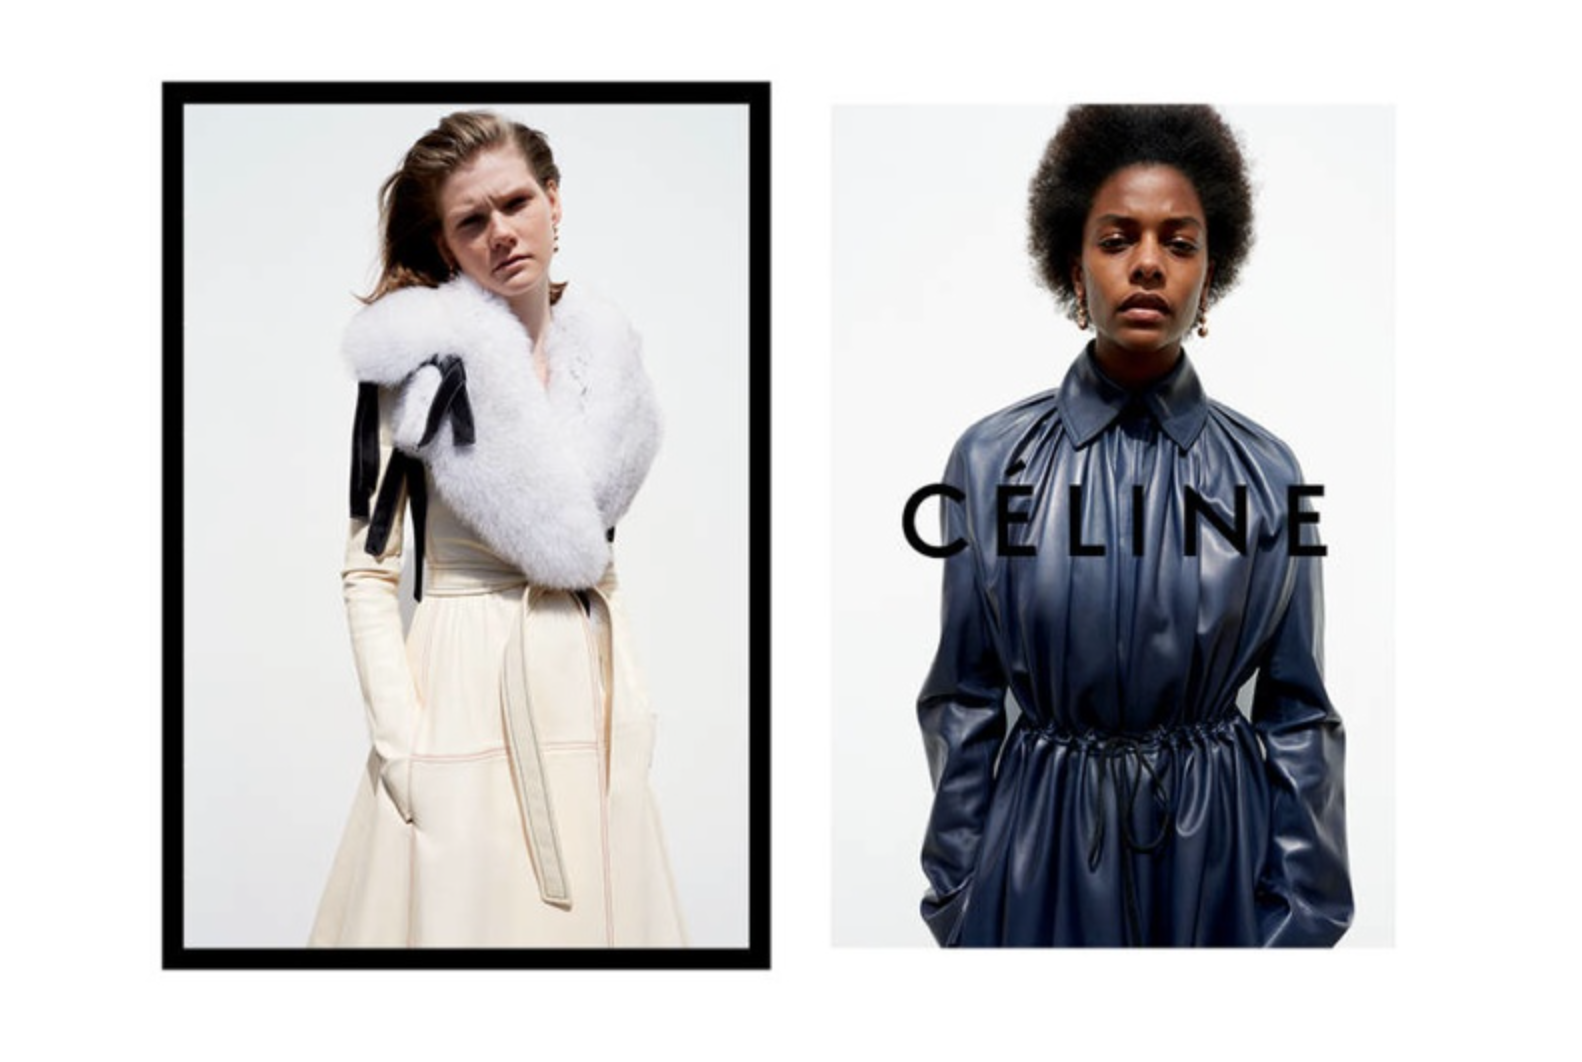 Celine Winter Campaign 2015